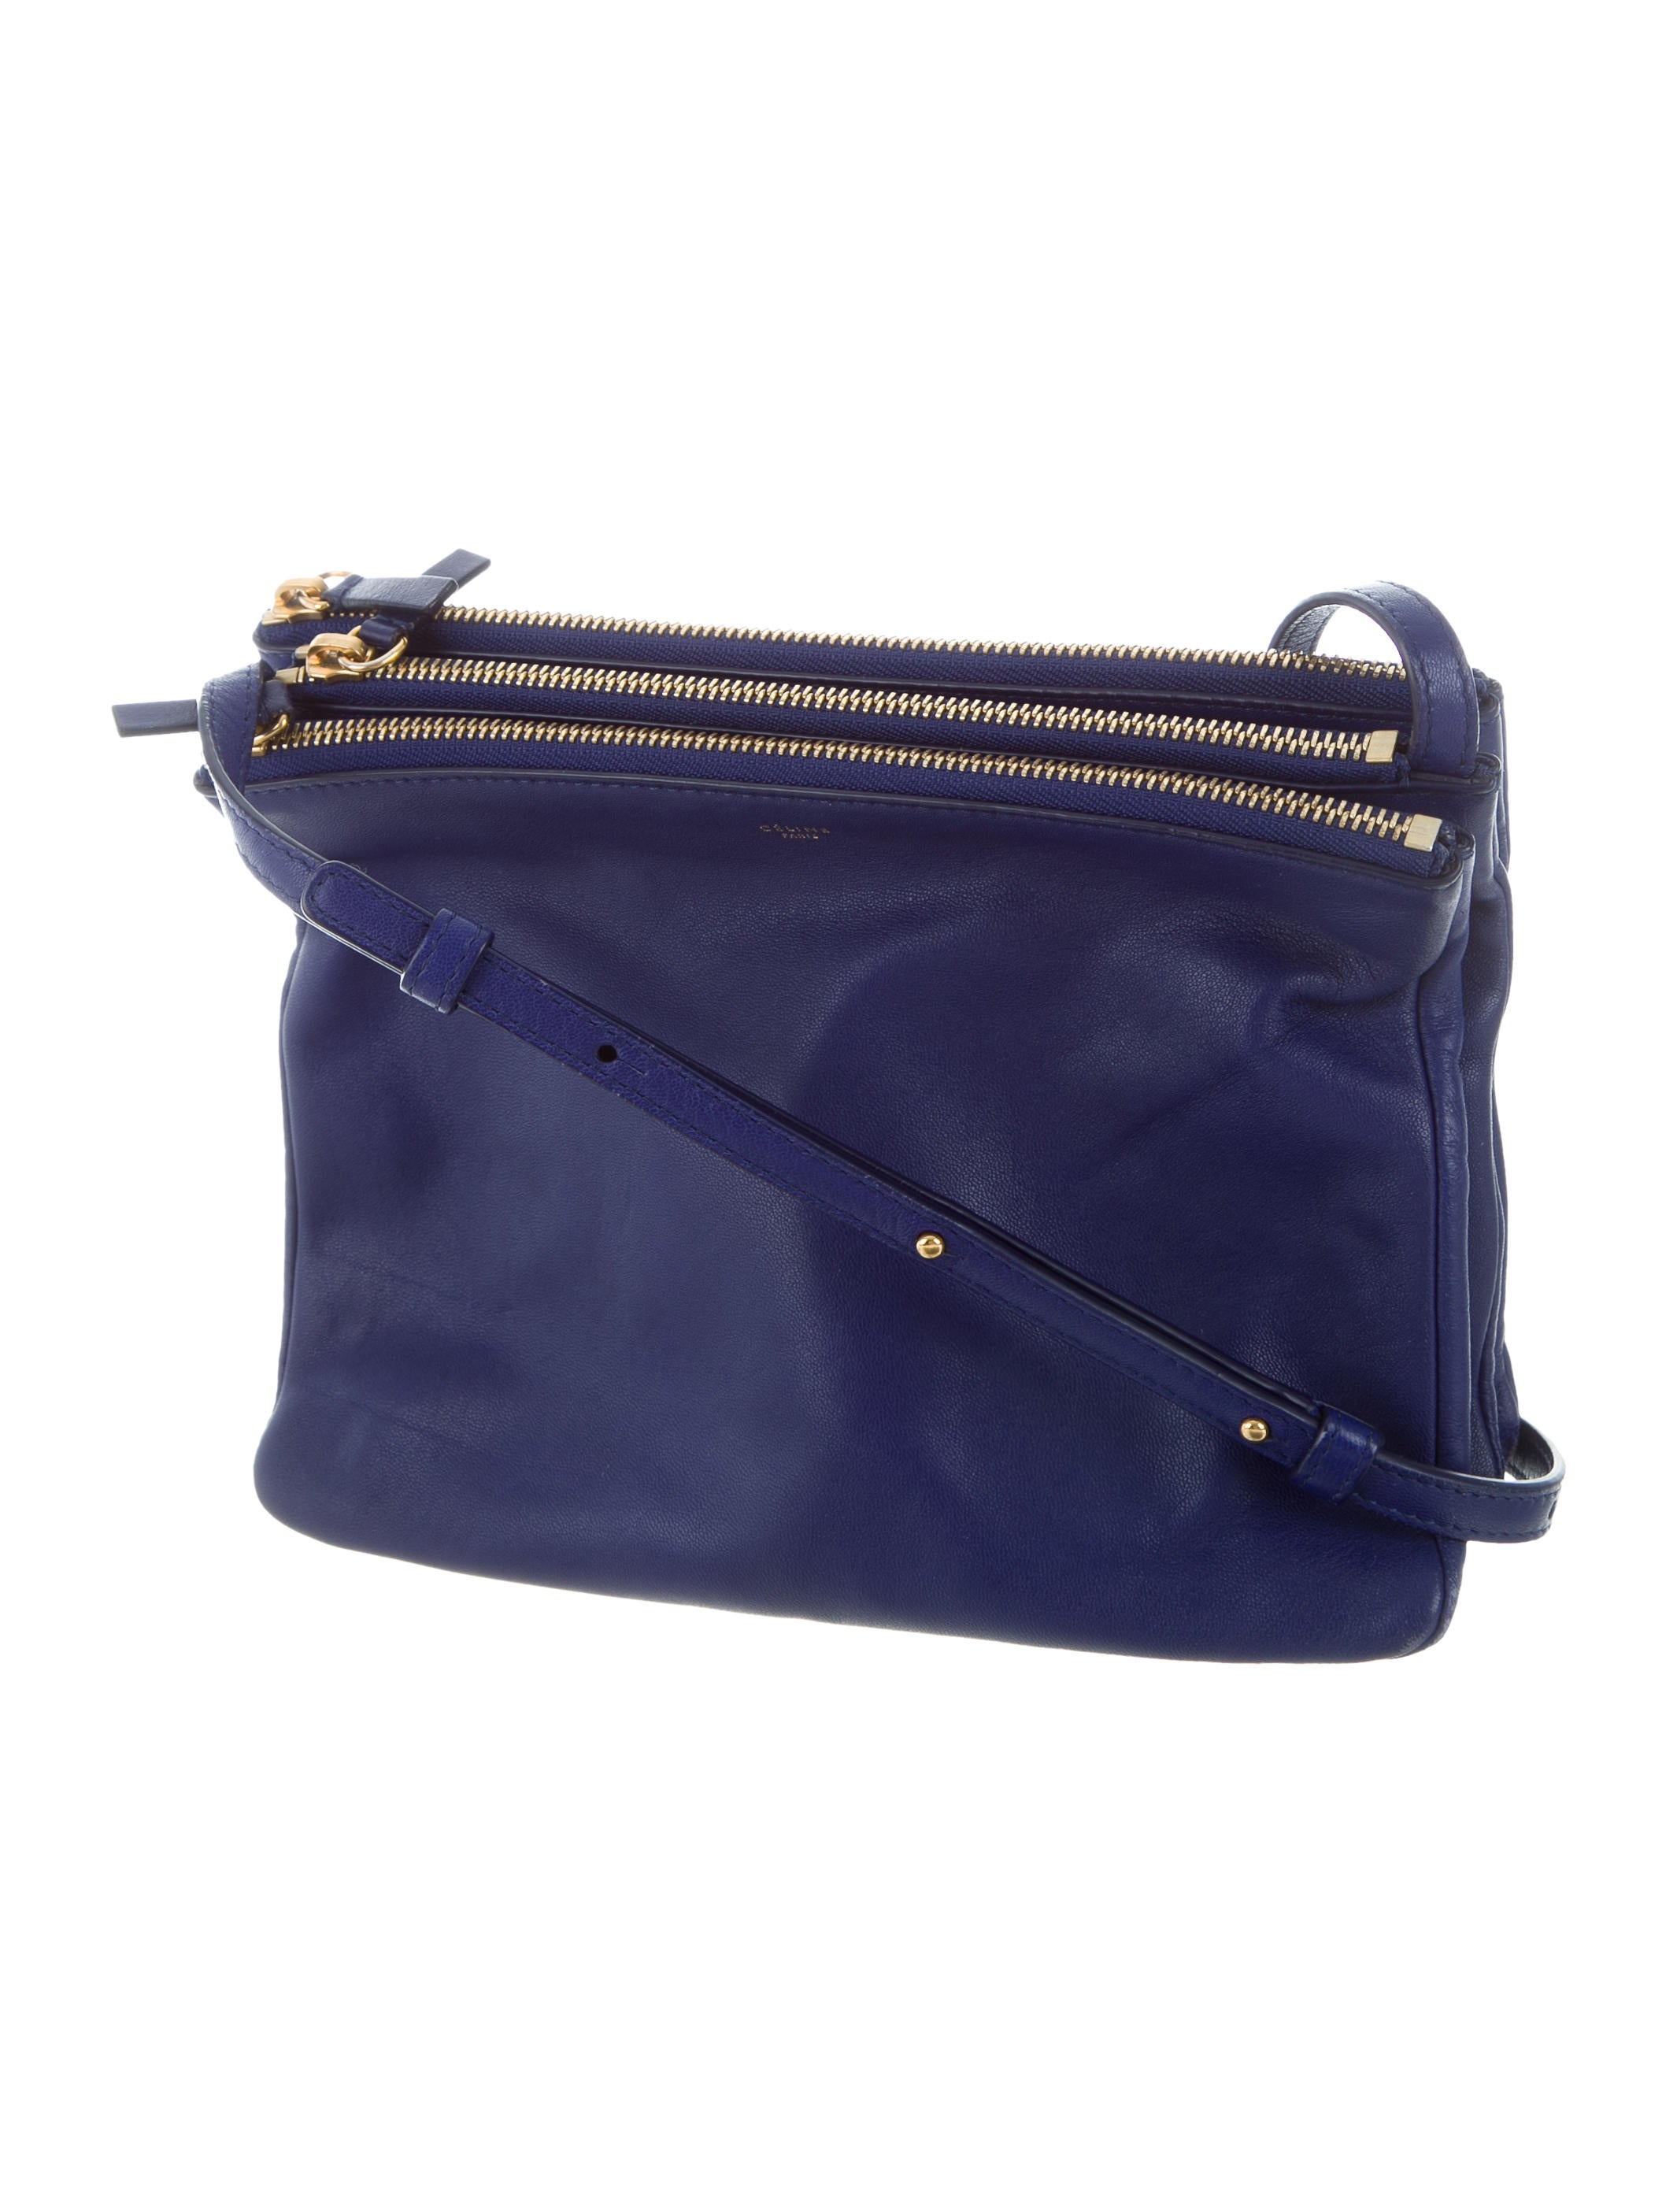 Find great deals on eBay for large cross body bag. Shop with confidence.